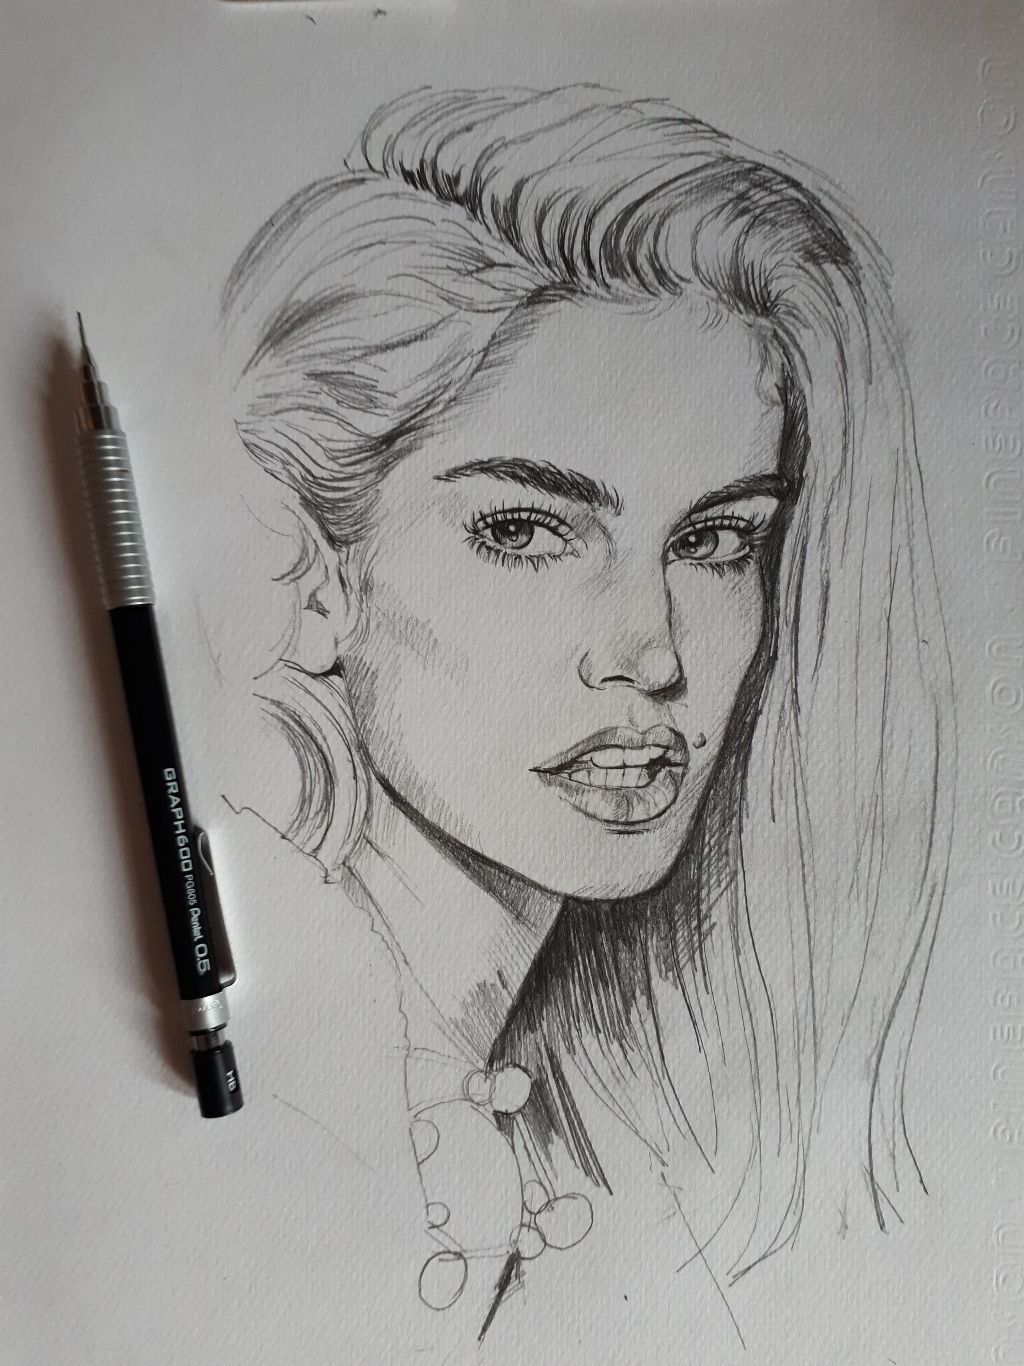 #drawing#sketch#cindy crawford😊🤗💖